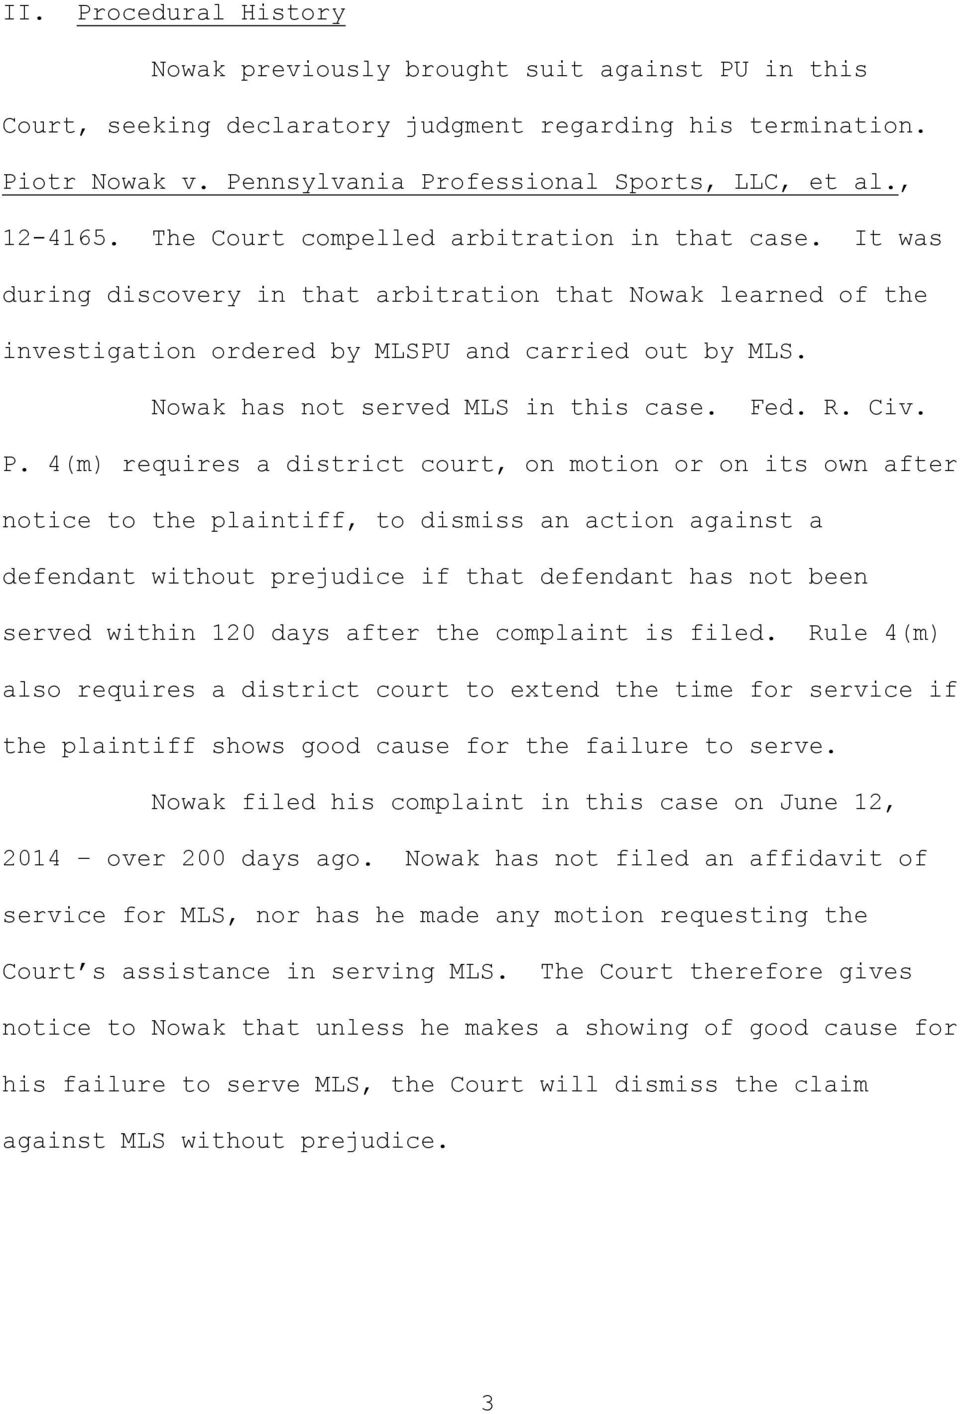 Nowak has not served MLS in this case. Fed. R. Civ. P.